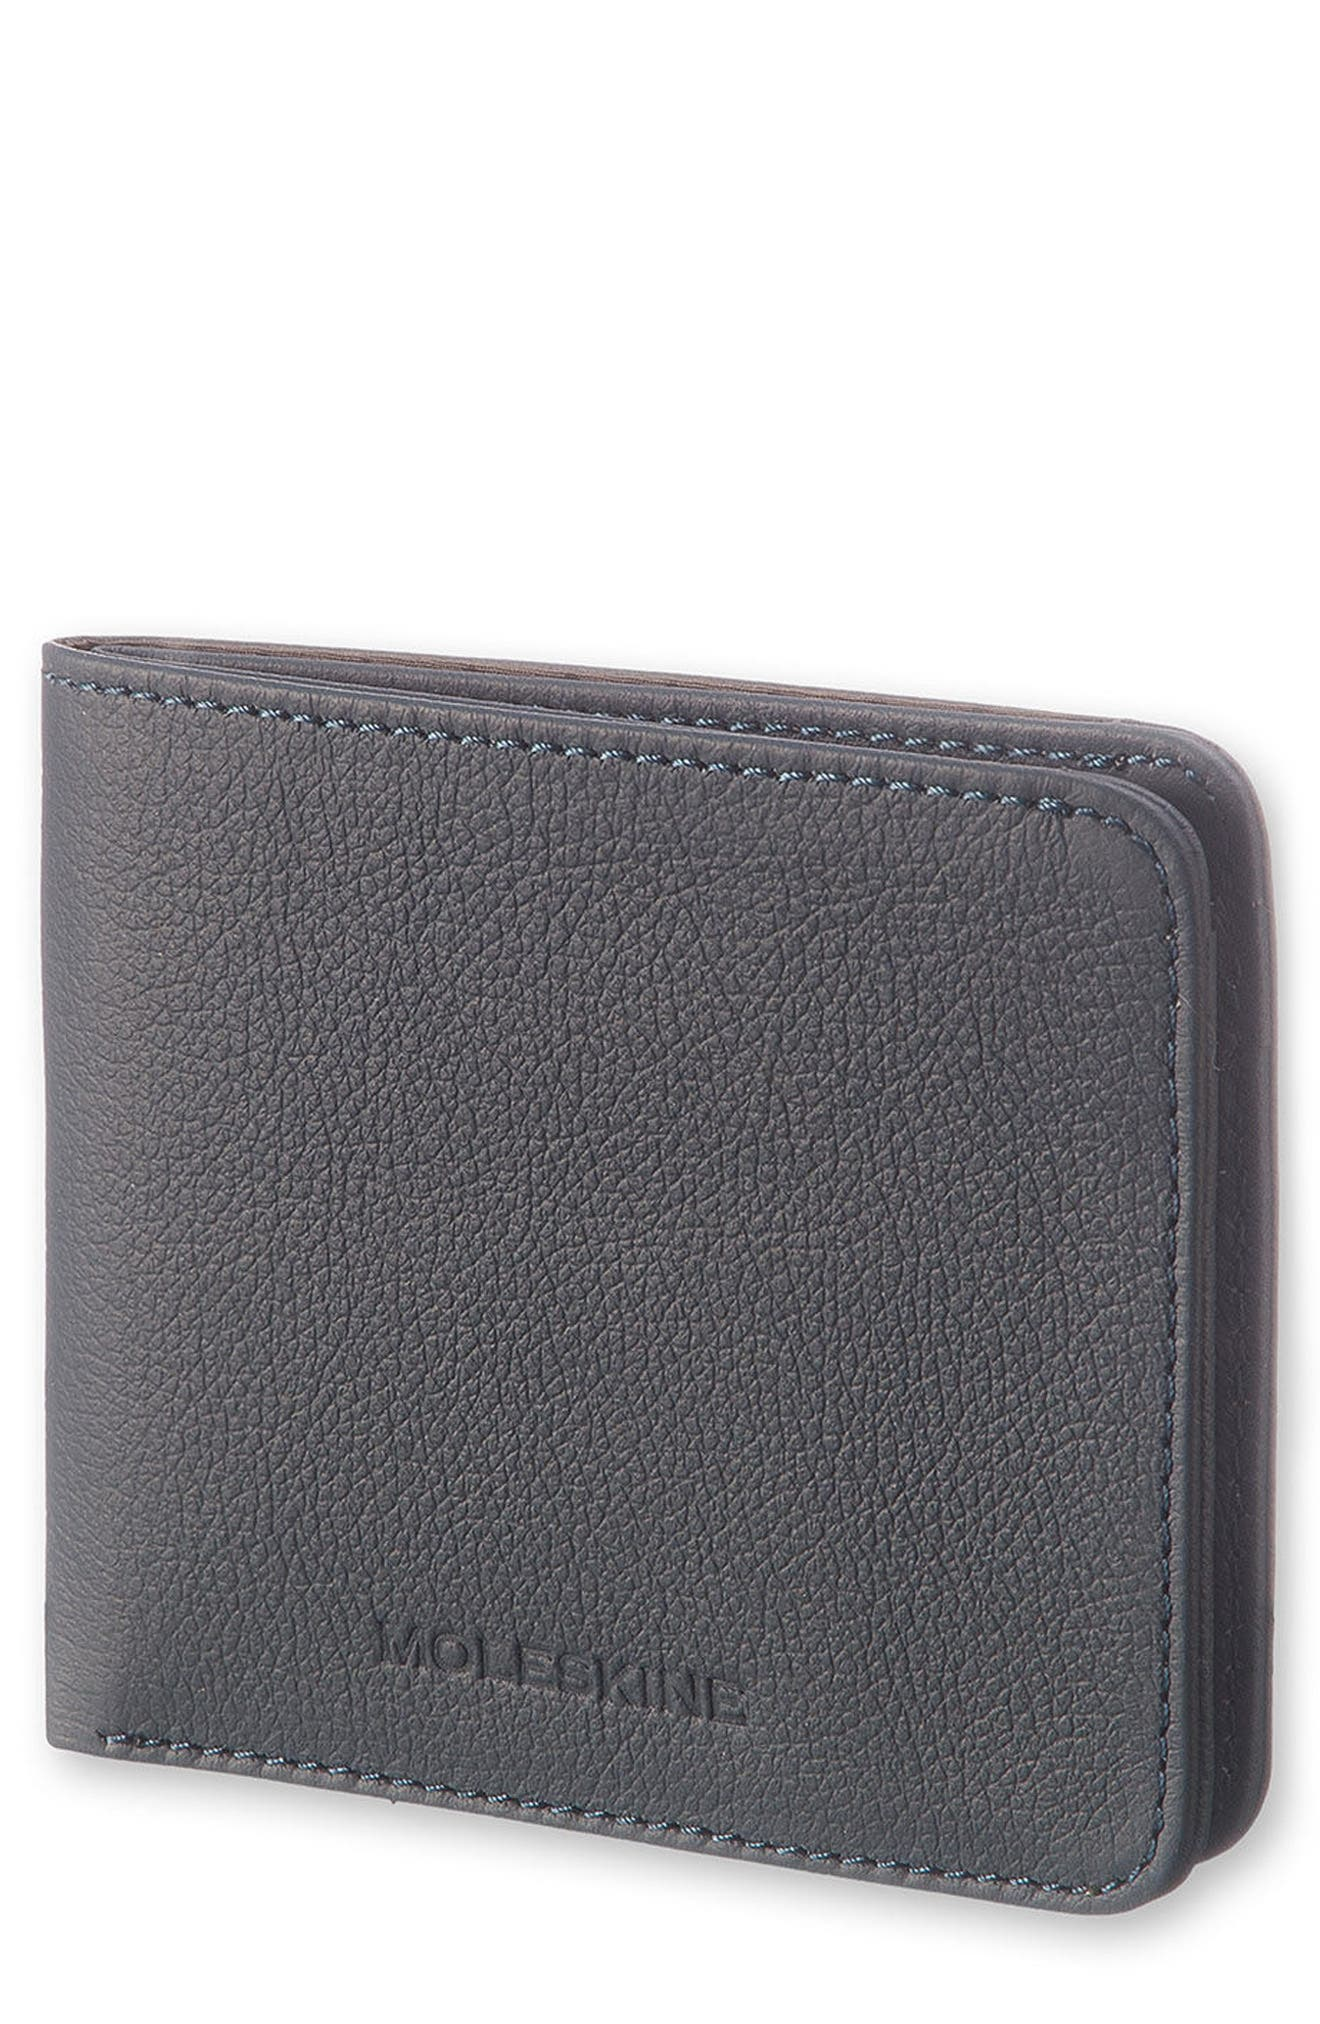 Alternate Image 1 Selected - Moleskine Lineage Leather Wallet